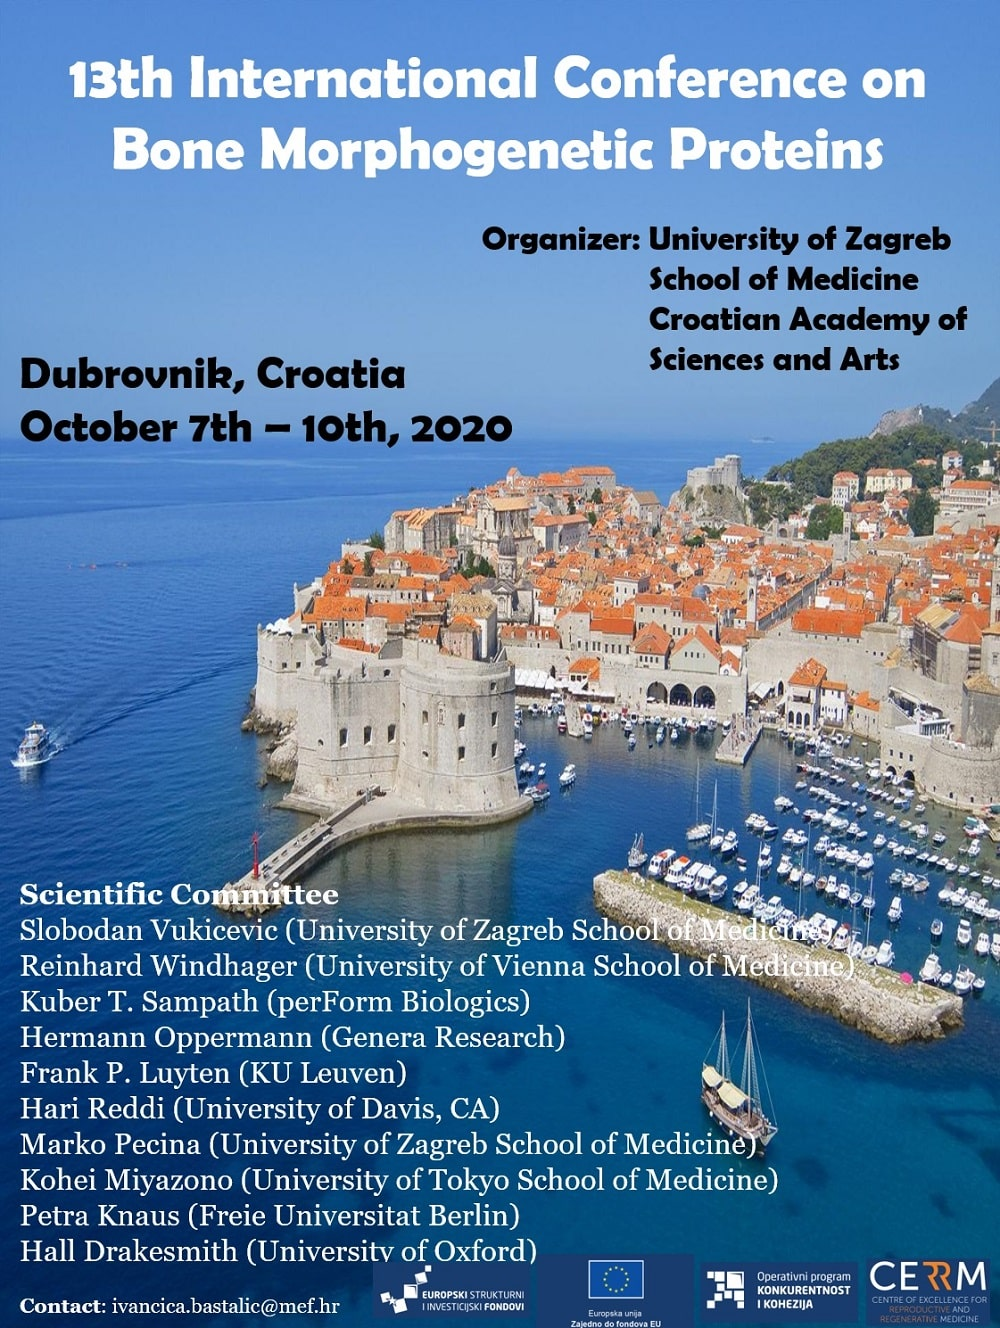 13th International Bone Morphogenetic Protein Conference in Dubrovnik - 2020